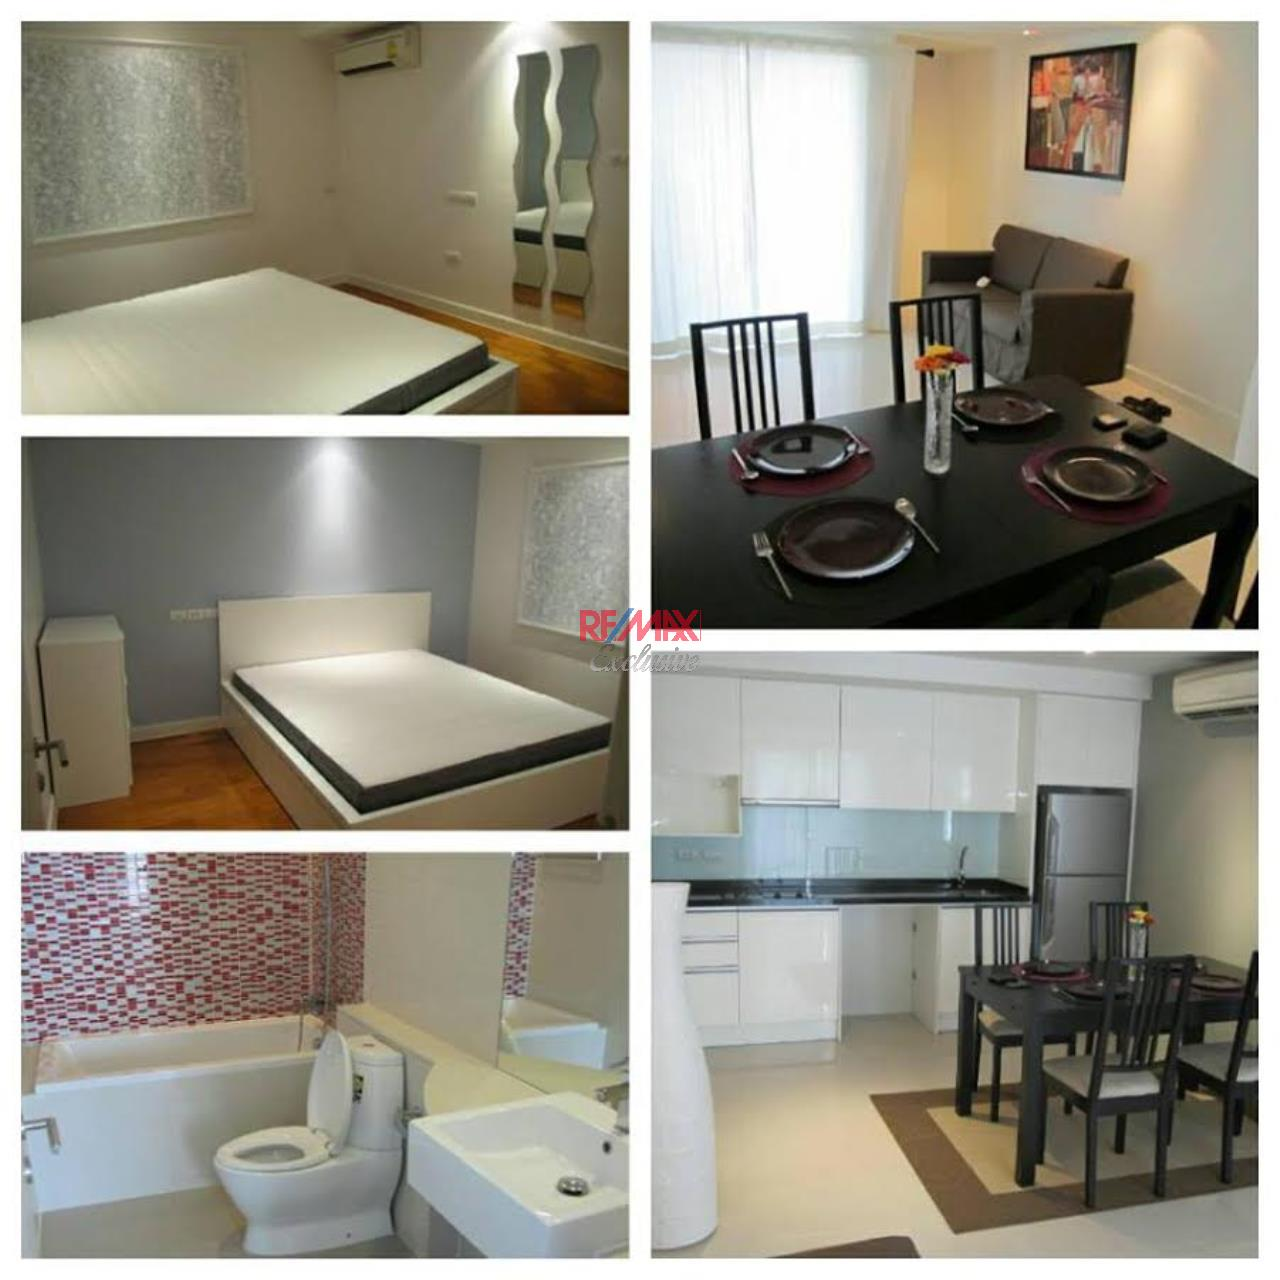 RE/MAX Exclusive Agency's Le Nice Ekamai 1 Bedroom for rent 25,000 THB 1